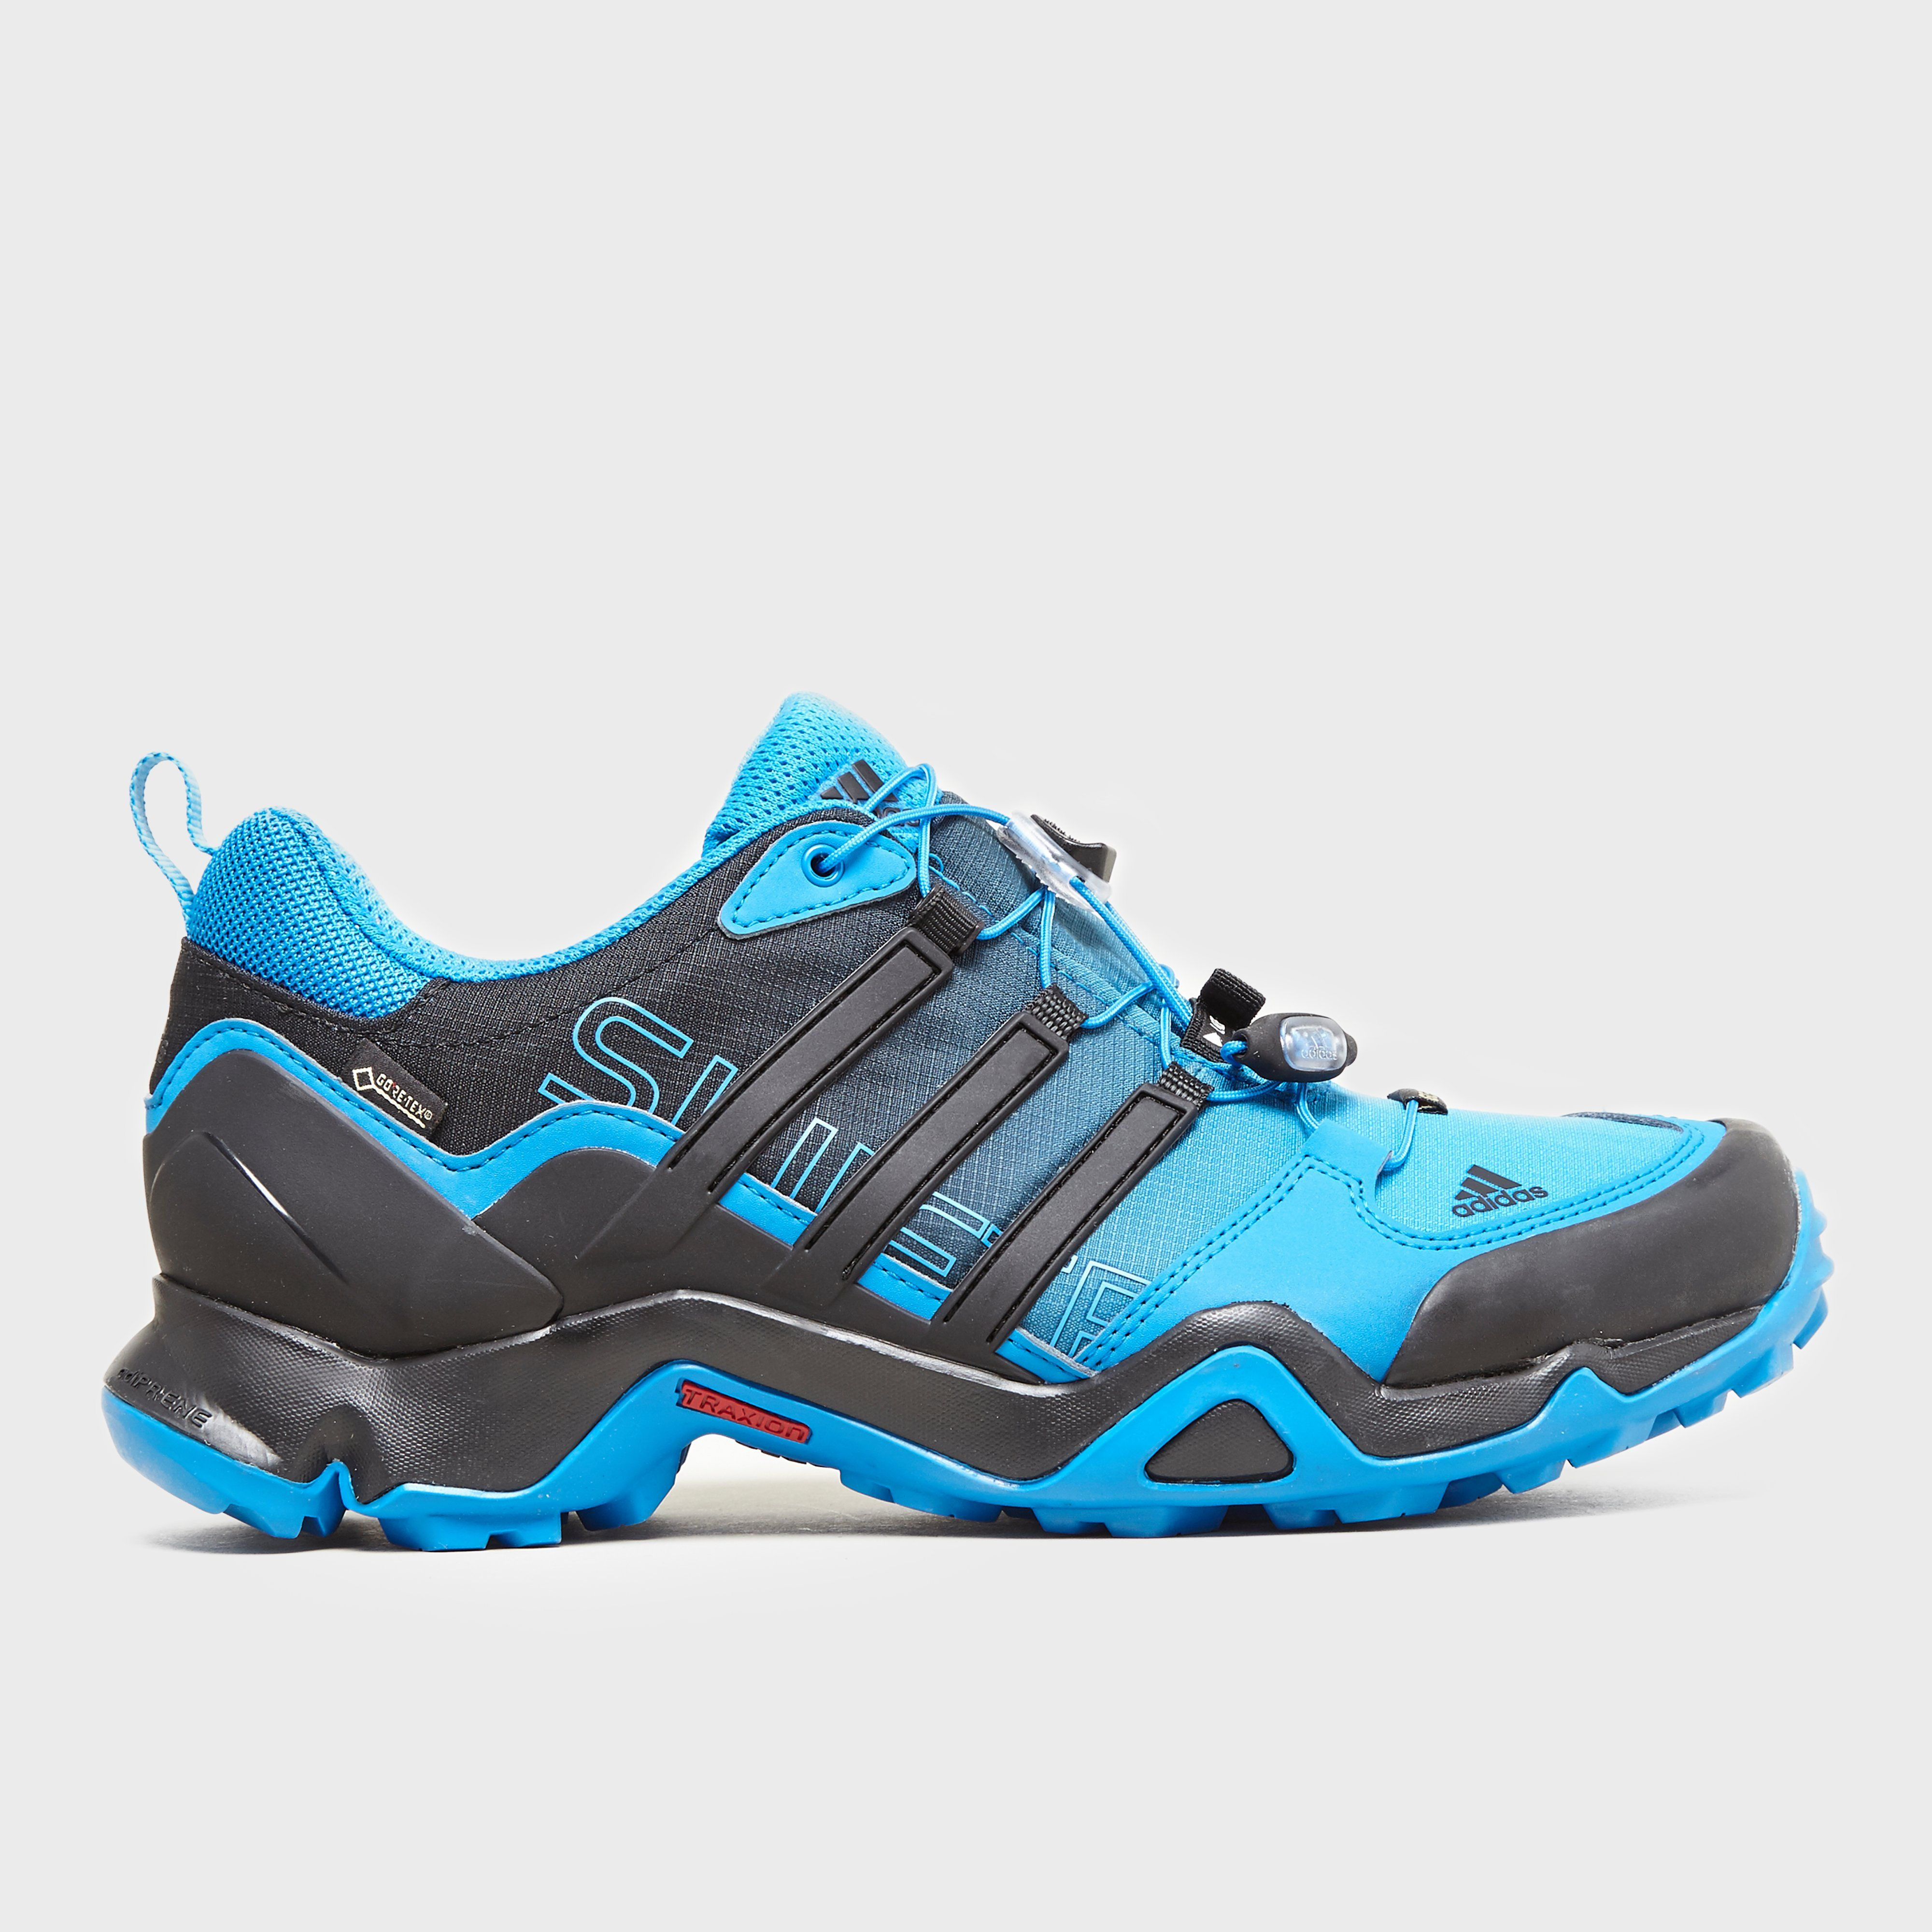 ADIDAS Men's Terrex Swift R GORE-TEX® Shoe